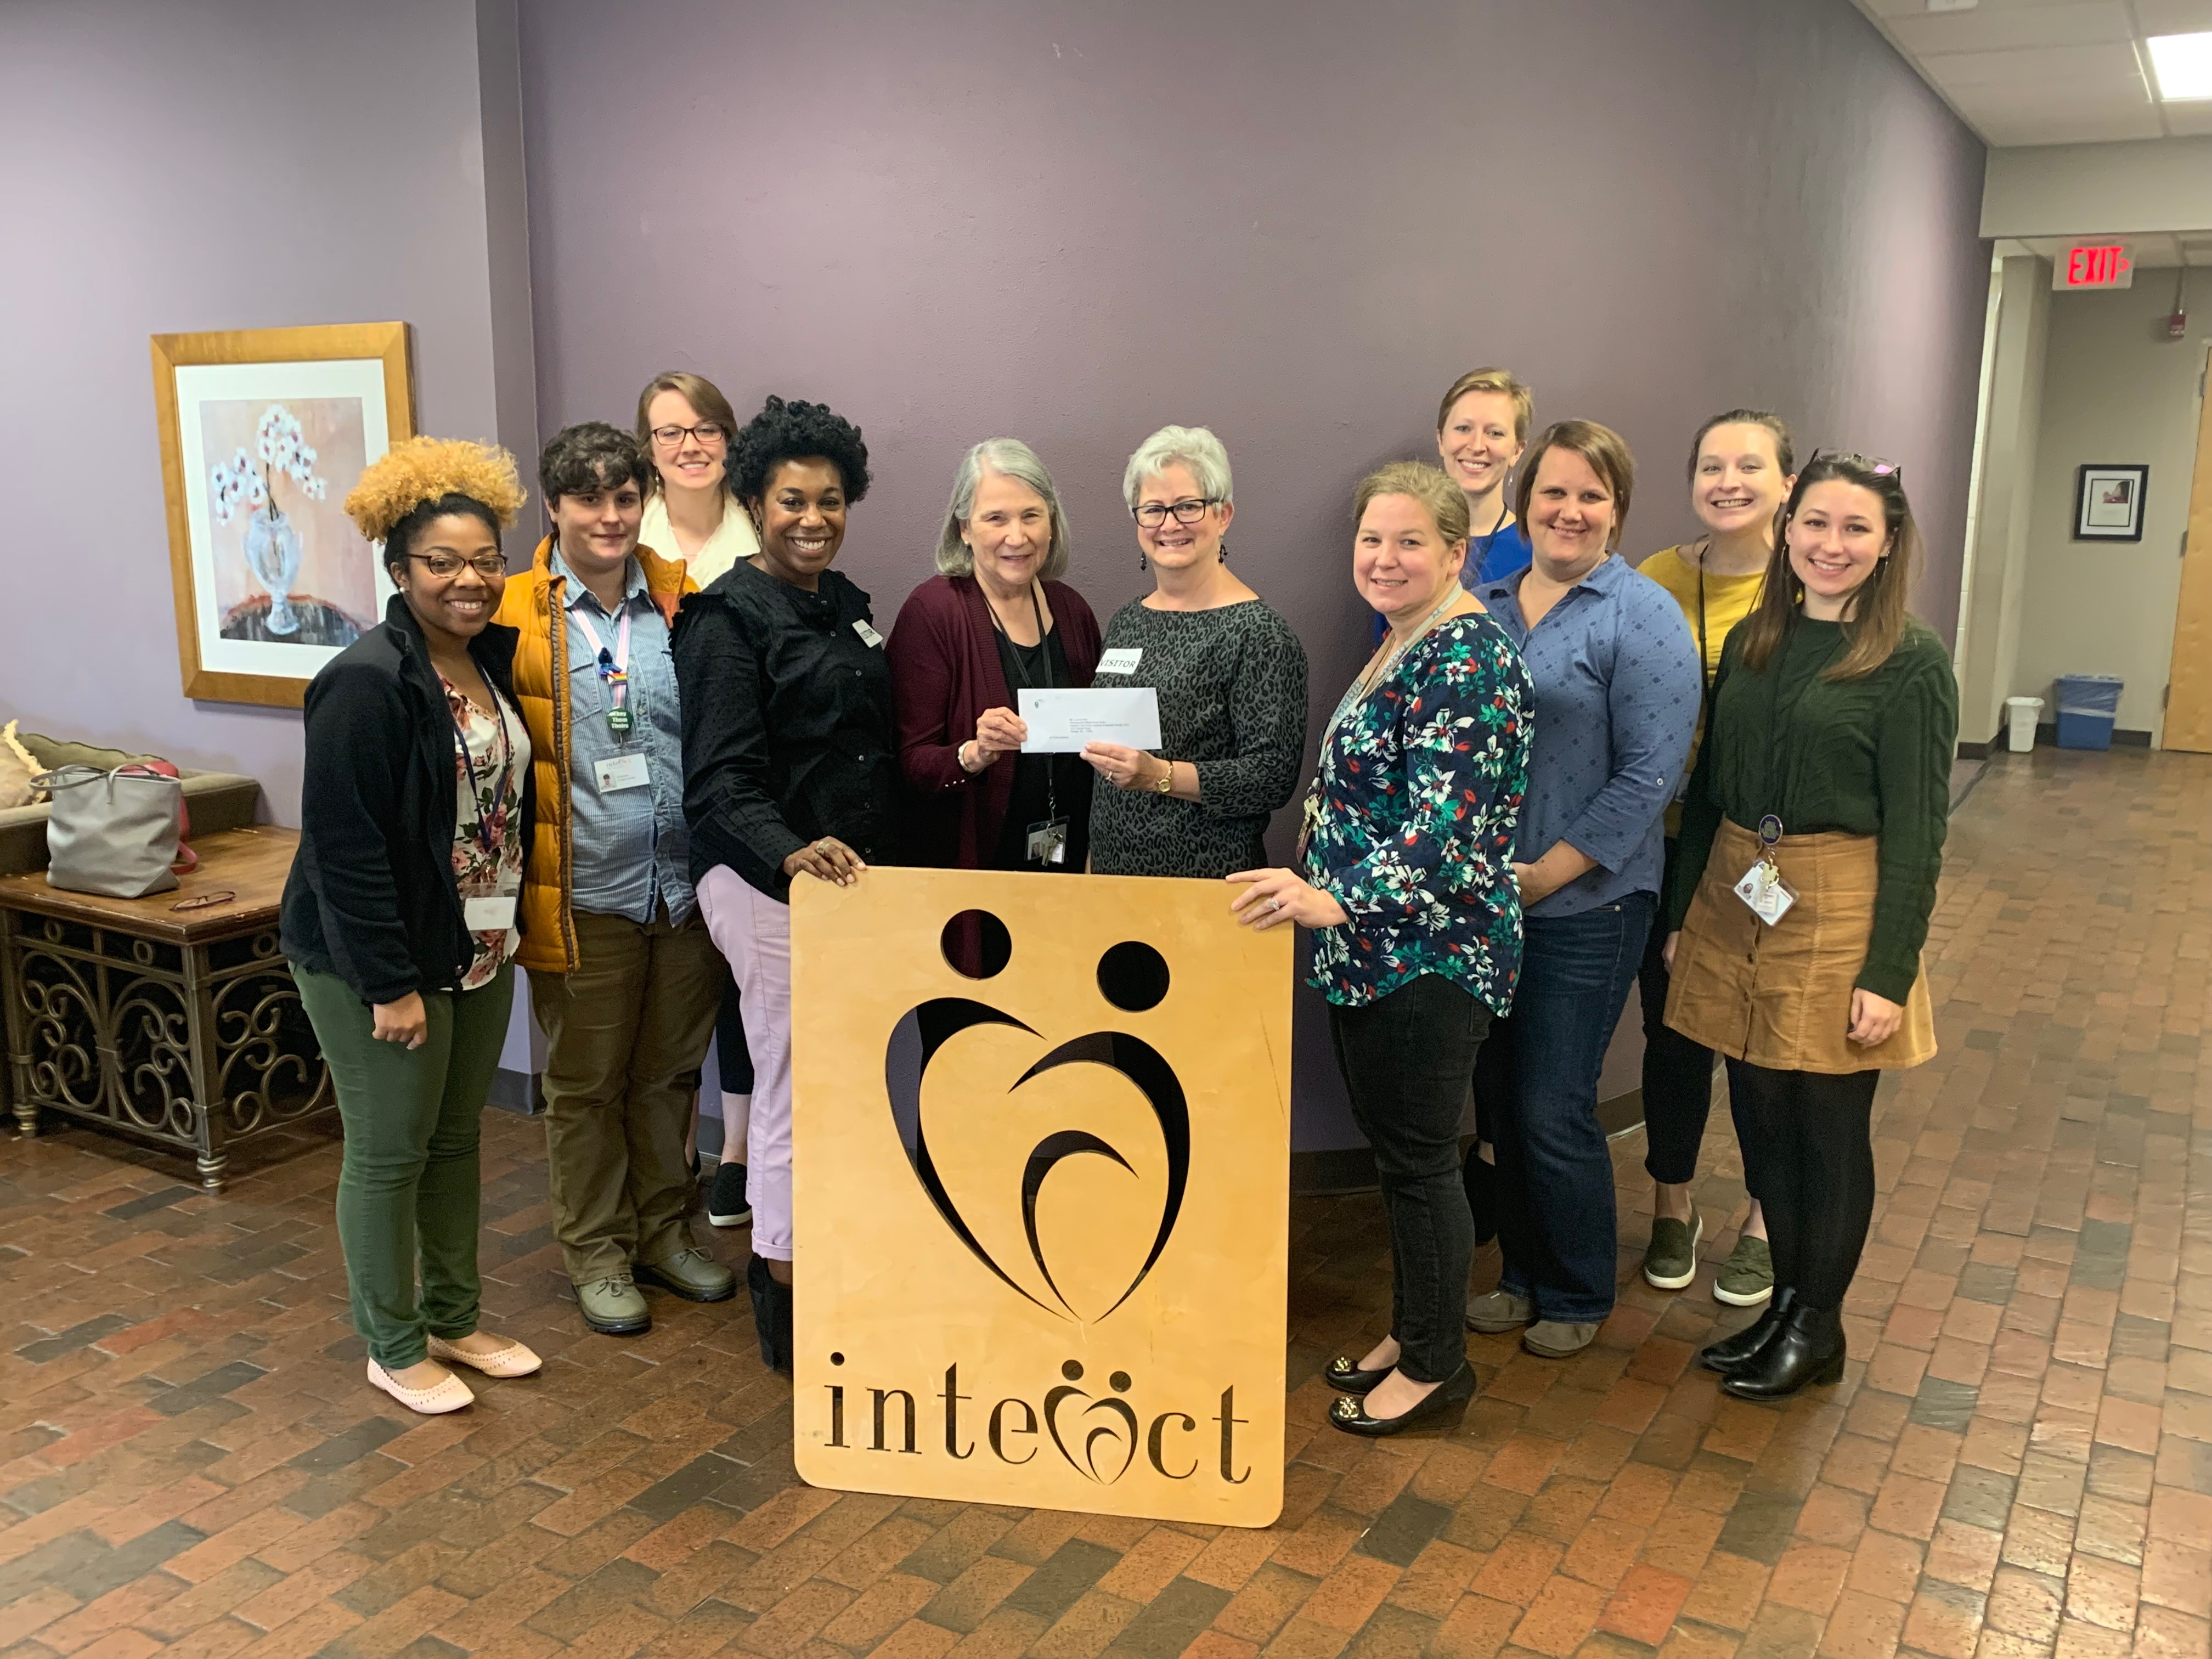 Quinn Novels, NCCF regional director, presents a grant award from the Women's Fund of North Carolina to the staff of InterAct.